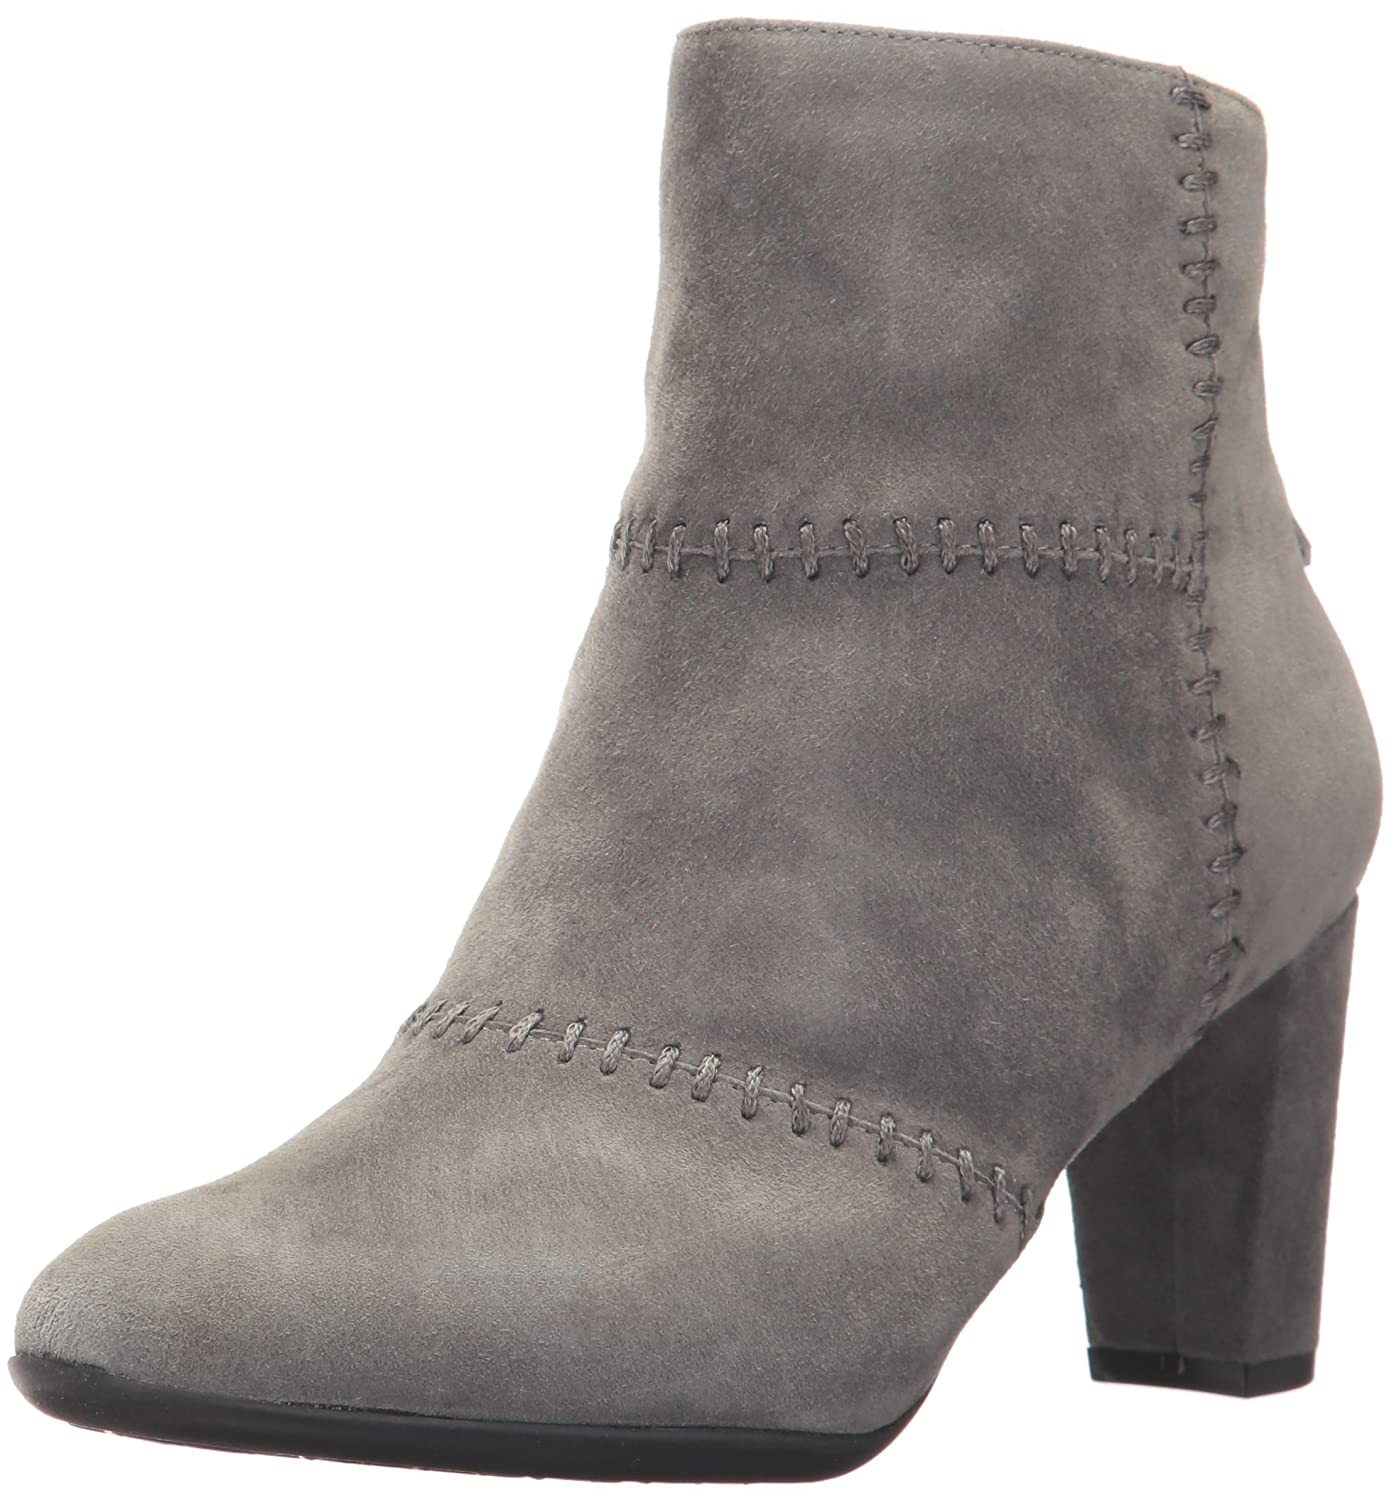 Aerosoles Women's First Ave Ankle Boot B06Y61DTGX 9 B(M) US|Dark Gray Suede